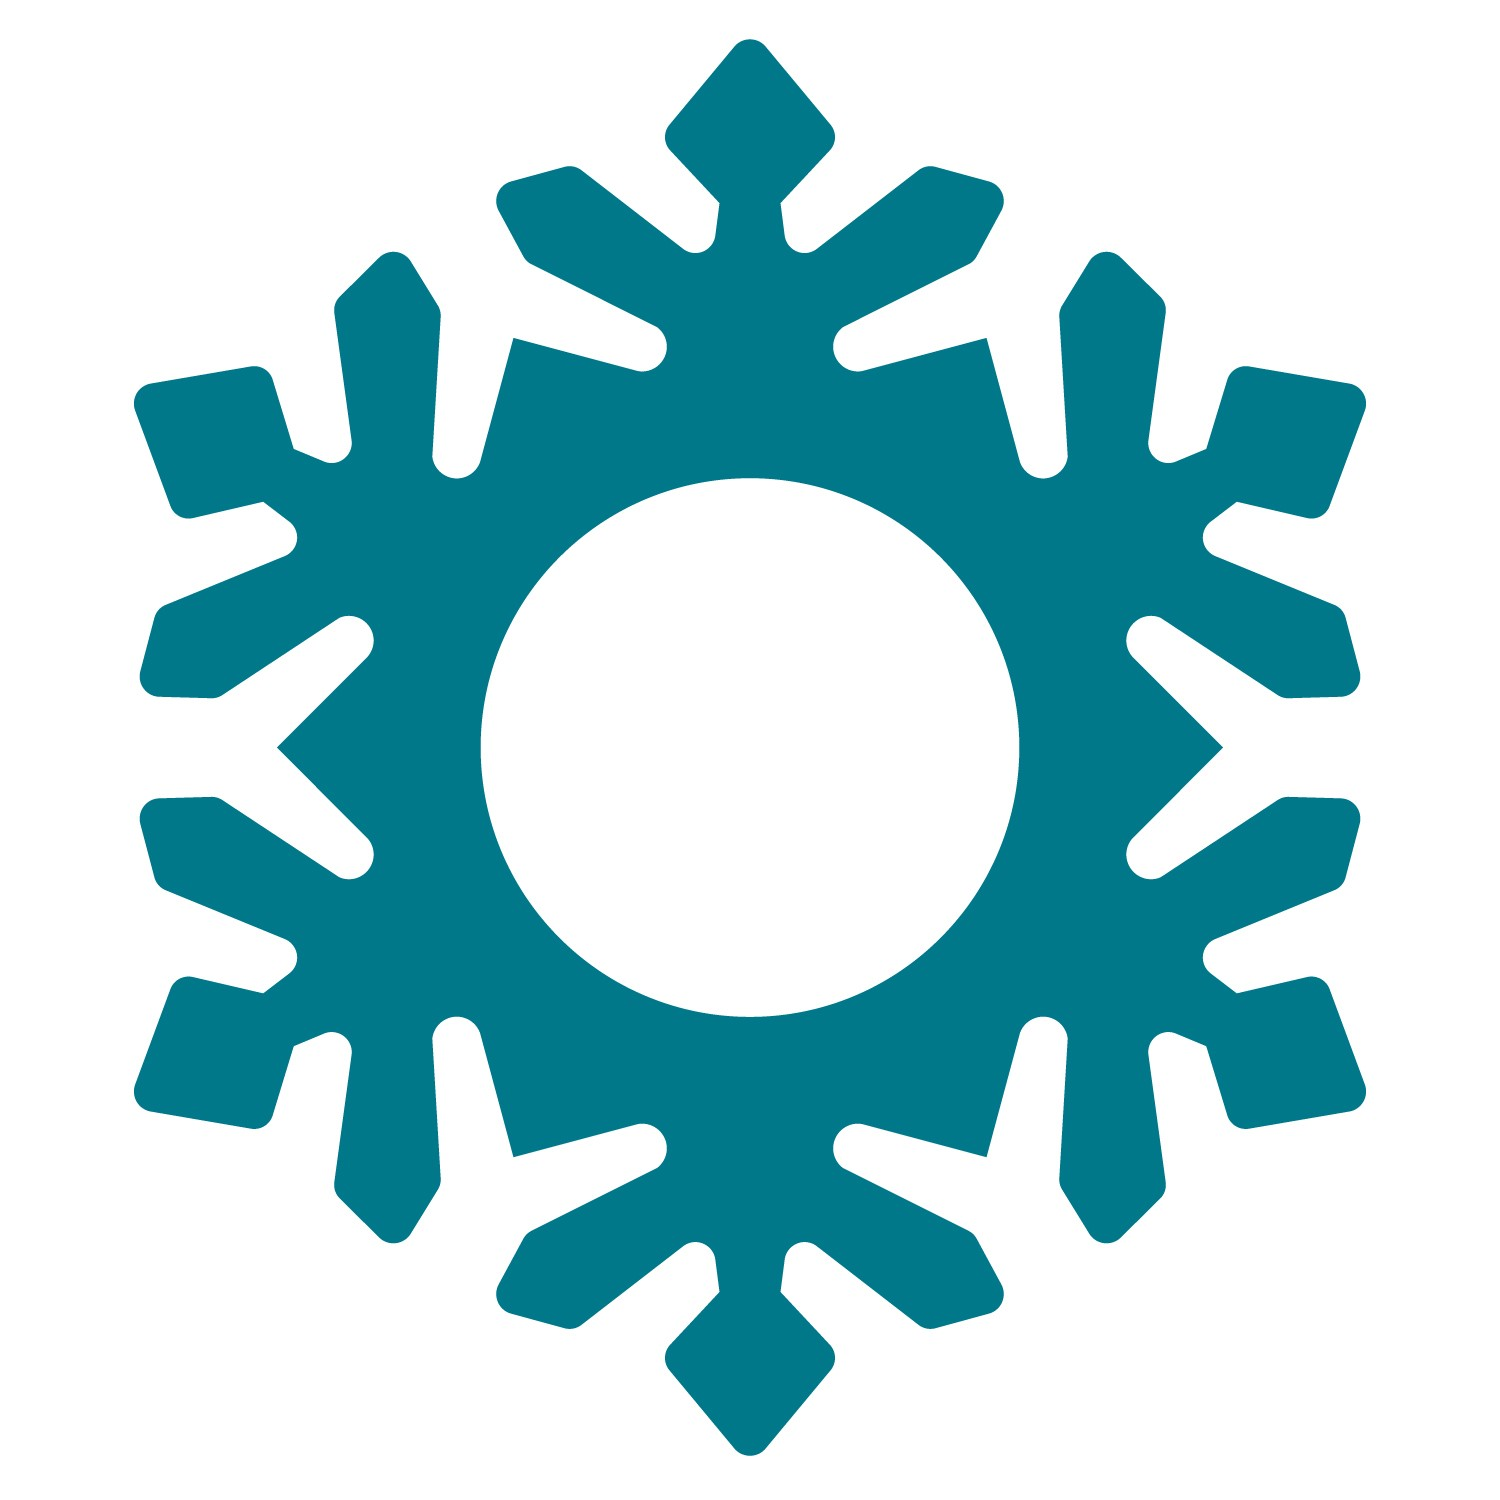 Snowflake Clipart Stock Images RoyaltyFree Images